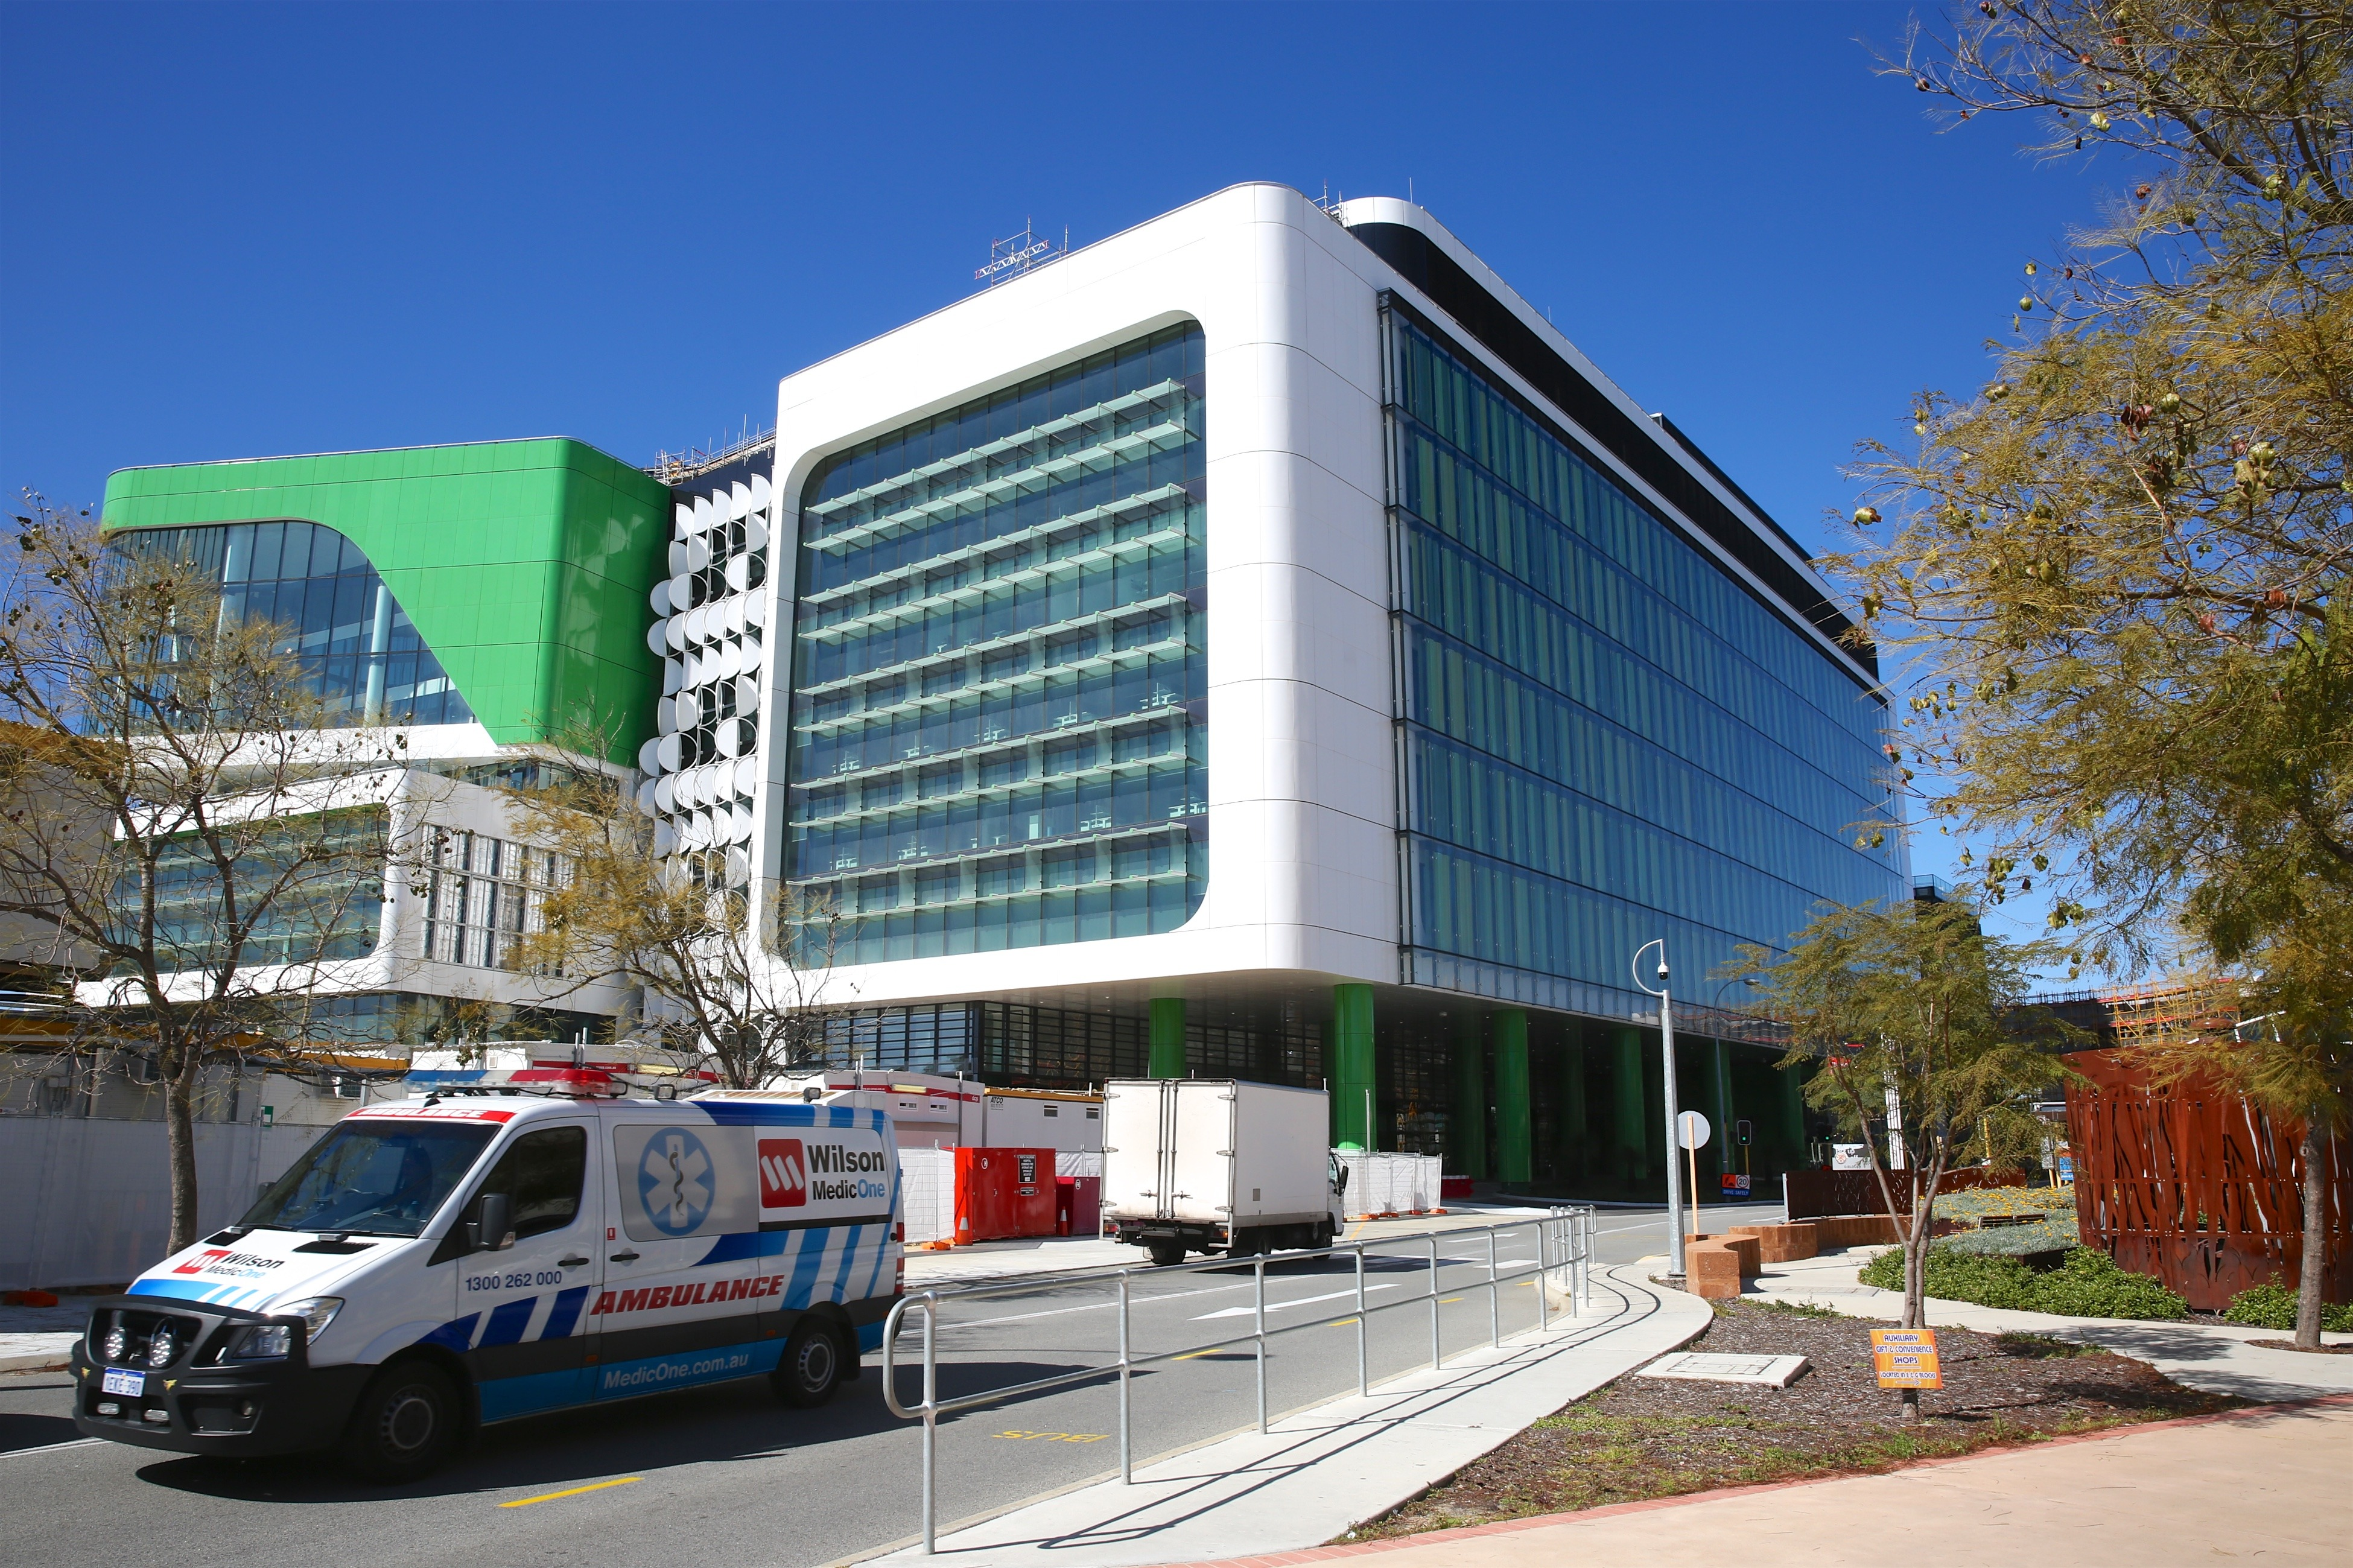 Perth Children's Hospital may not open this year with lead still in drinking water